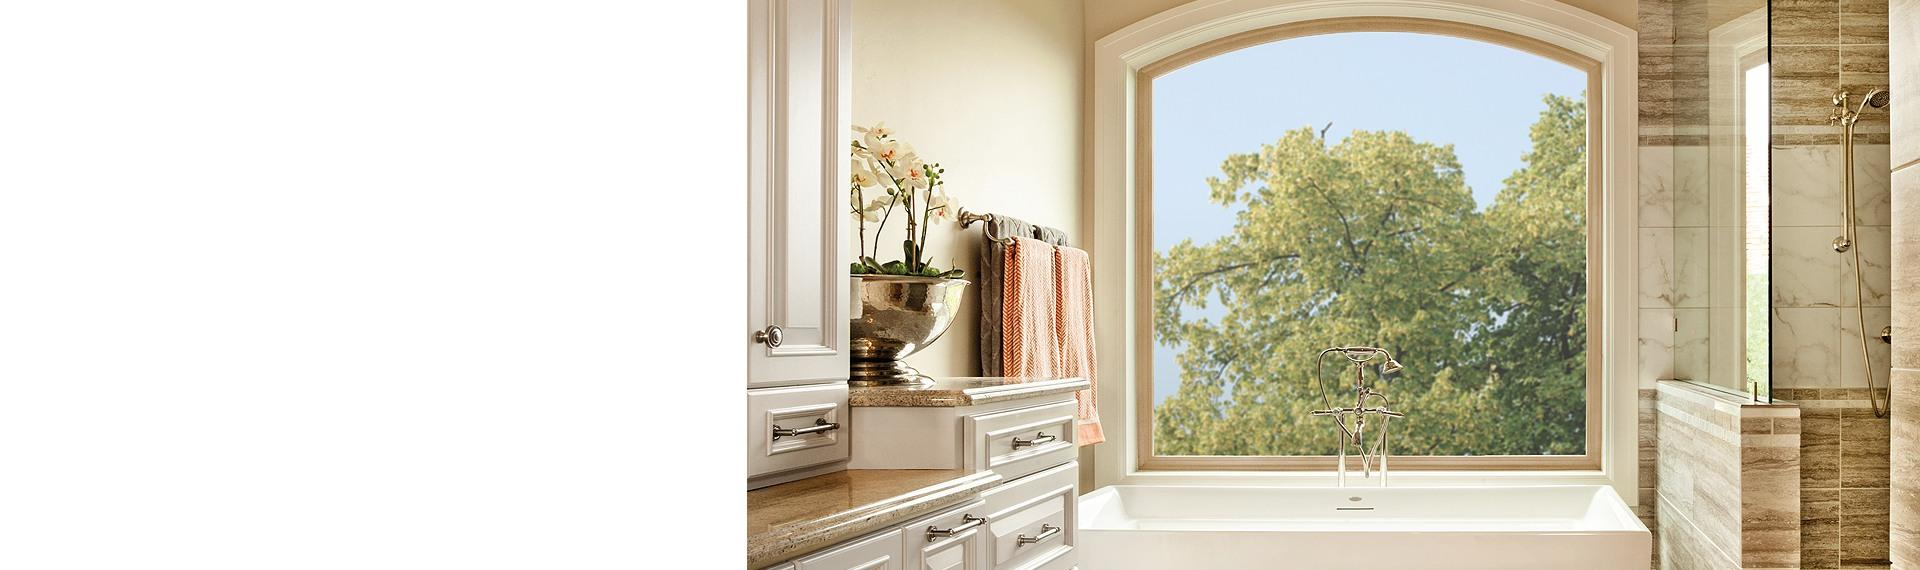 Tuscany Series vinyl radius window in tan